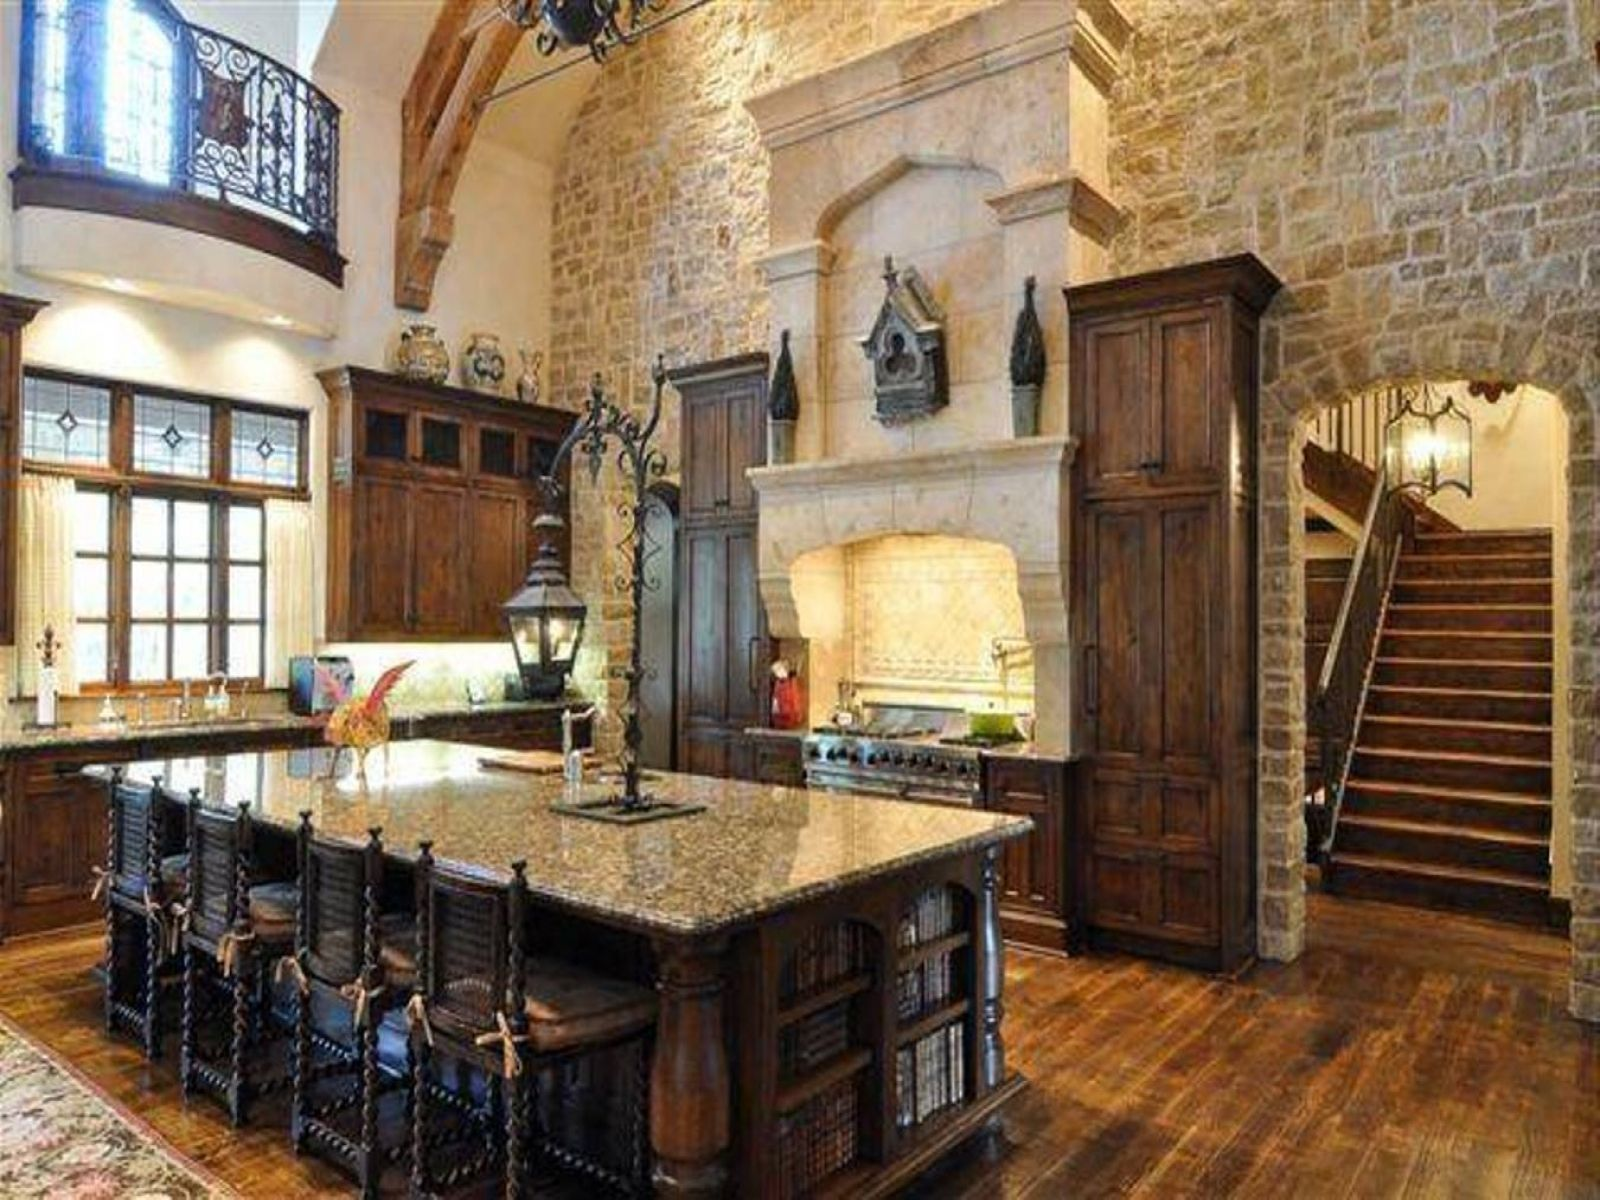 Best Kitchen Gallery: Luxury Rustic Tuscan Kitchen Design With Stone And Large Island of Imgaes Luxury Tuscan Kitchen on rachelxblog.com